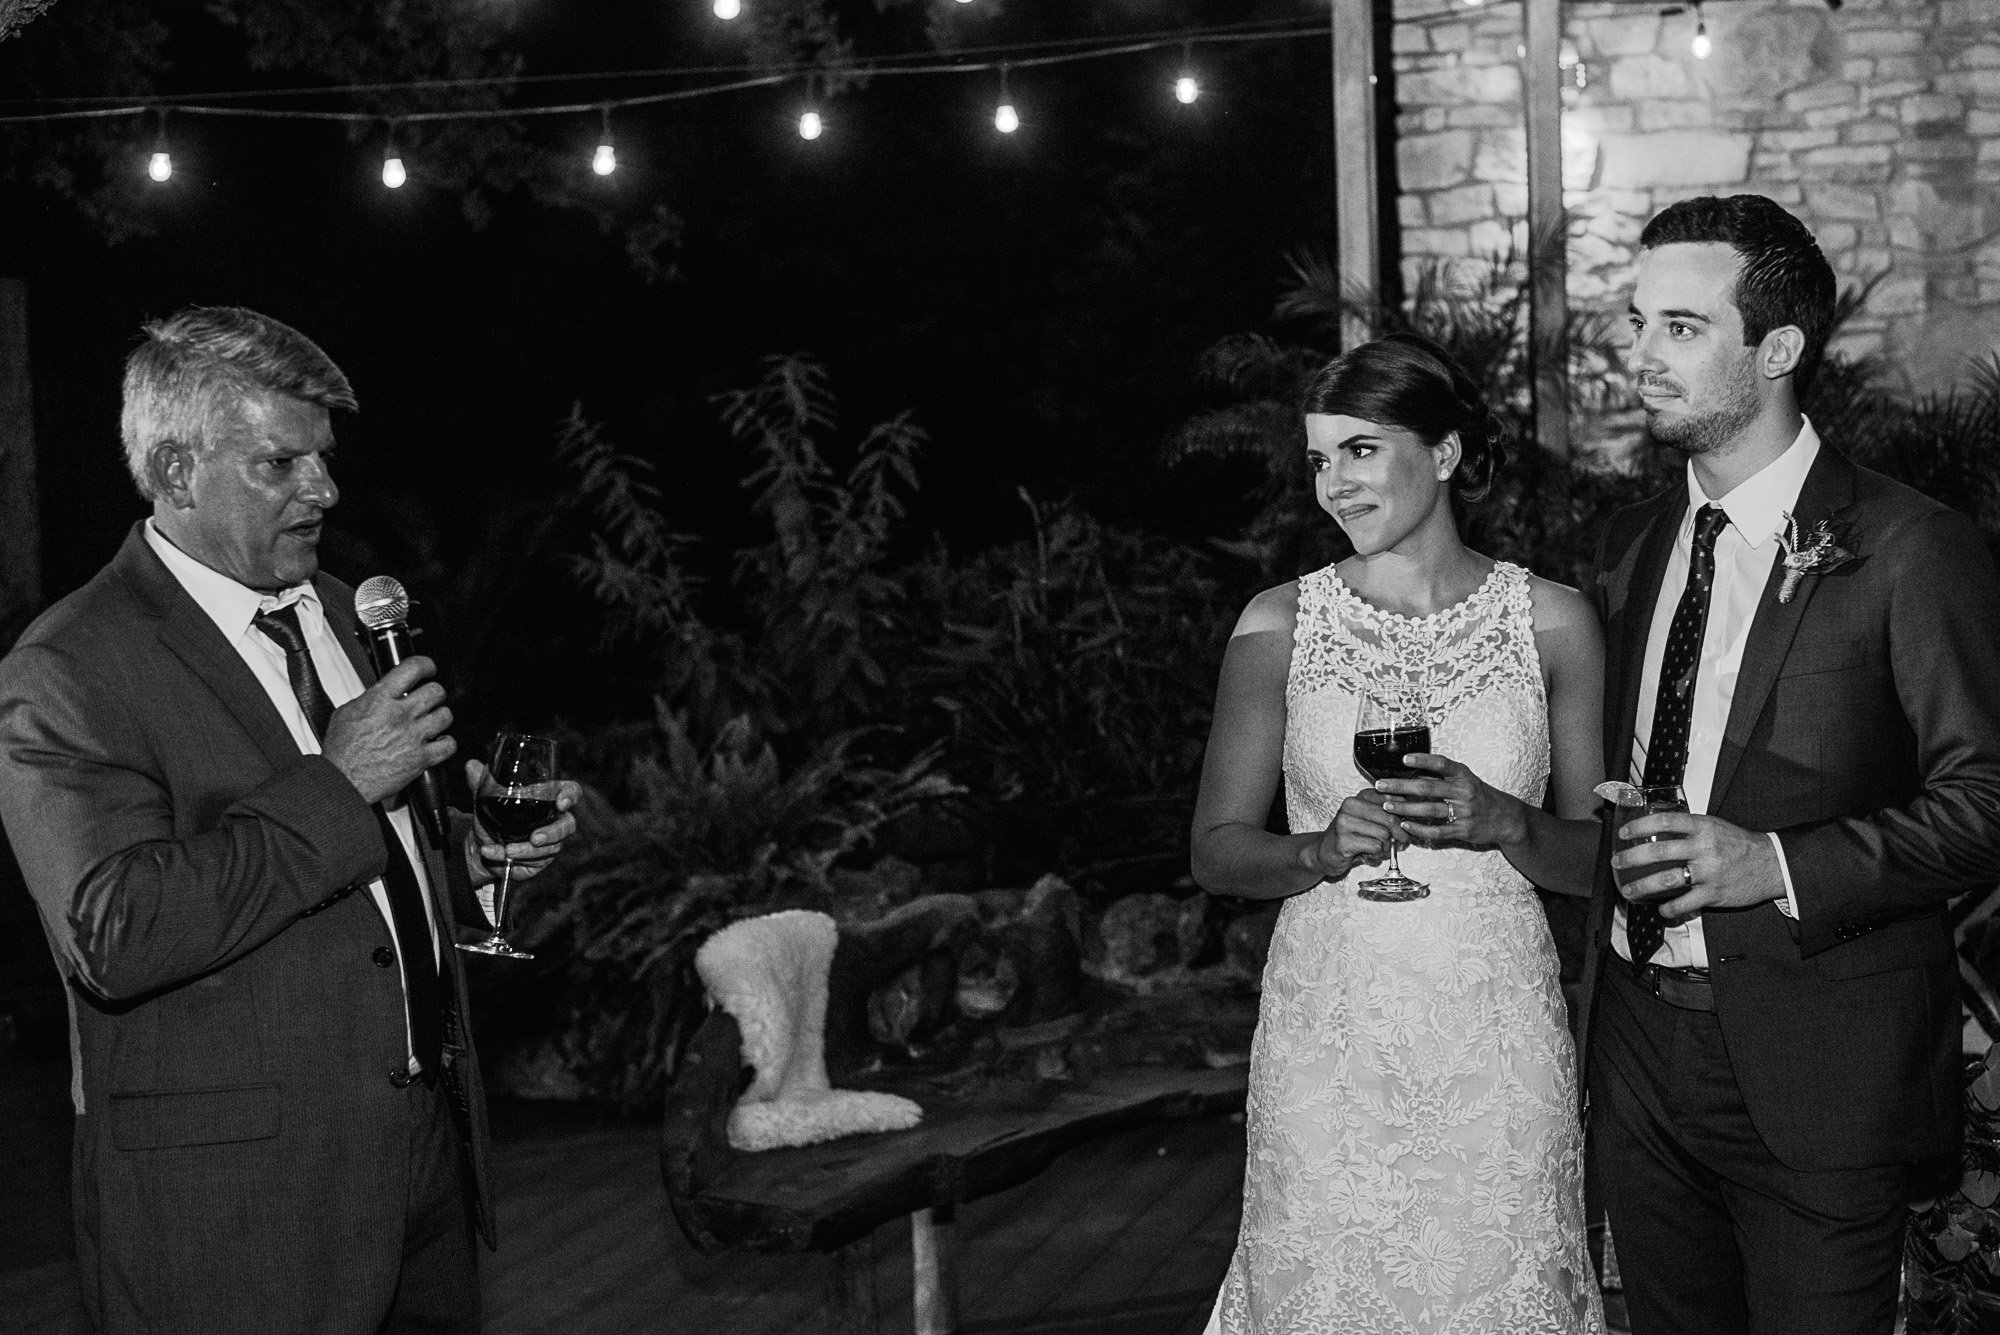 wedding toasts outdoors under string lights, emotional wedding photos for non-traditional couples in austin texas